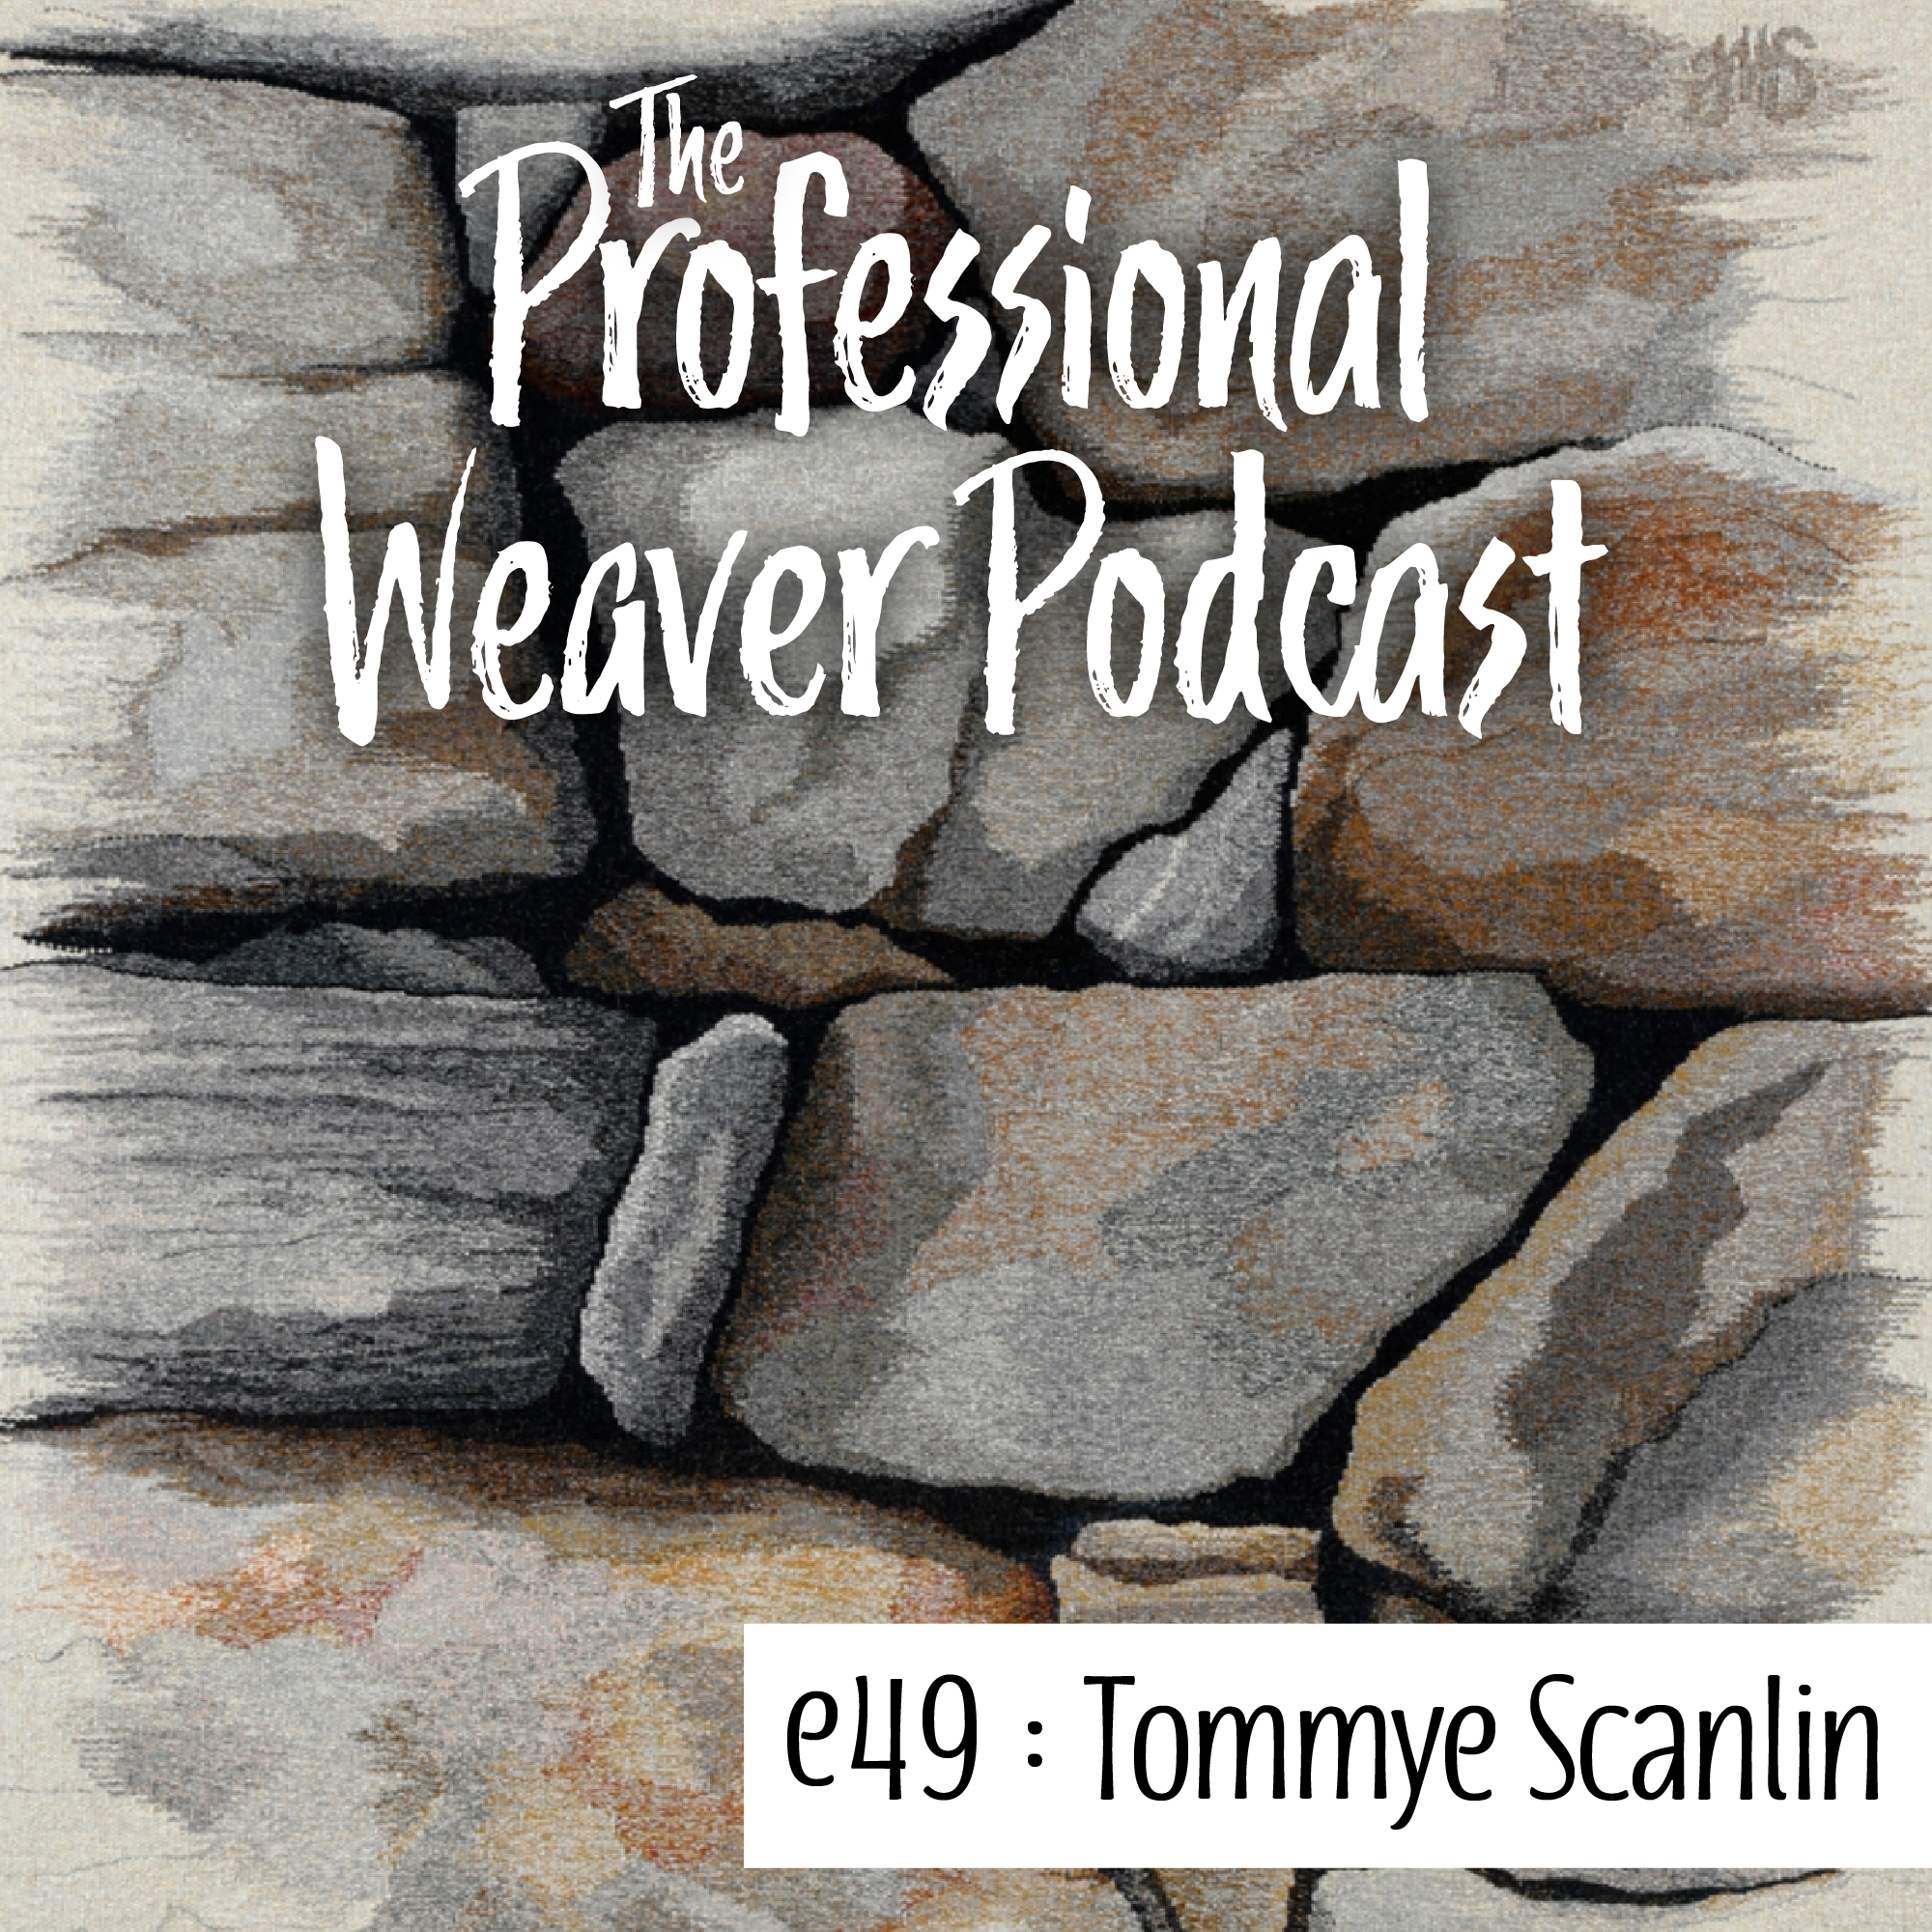 S2E19 : Tommye Scanlin on how she came to be a weaving teacher, what inspires her tapestries, and the process of writing her books.